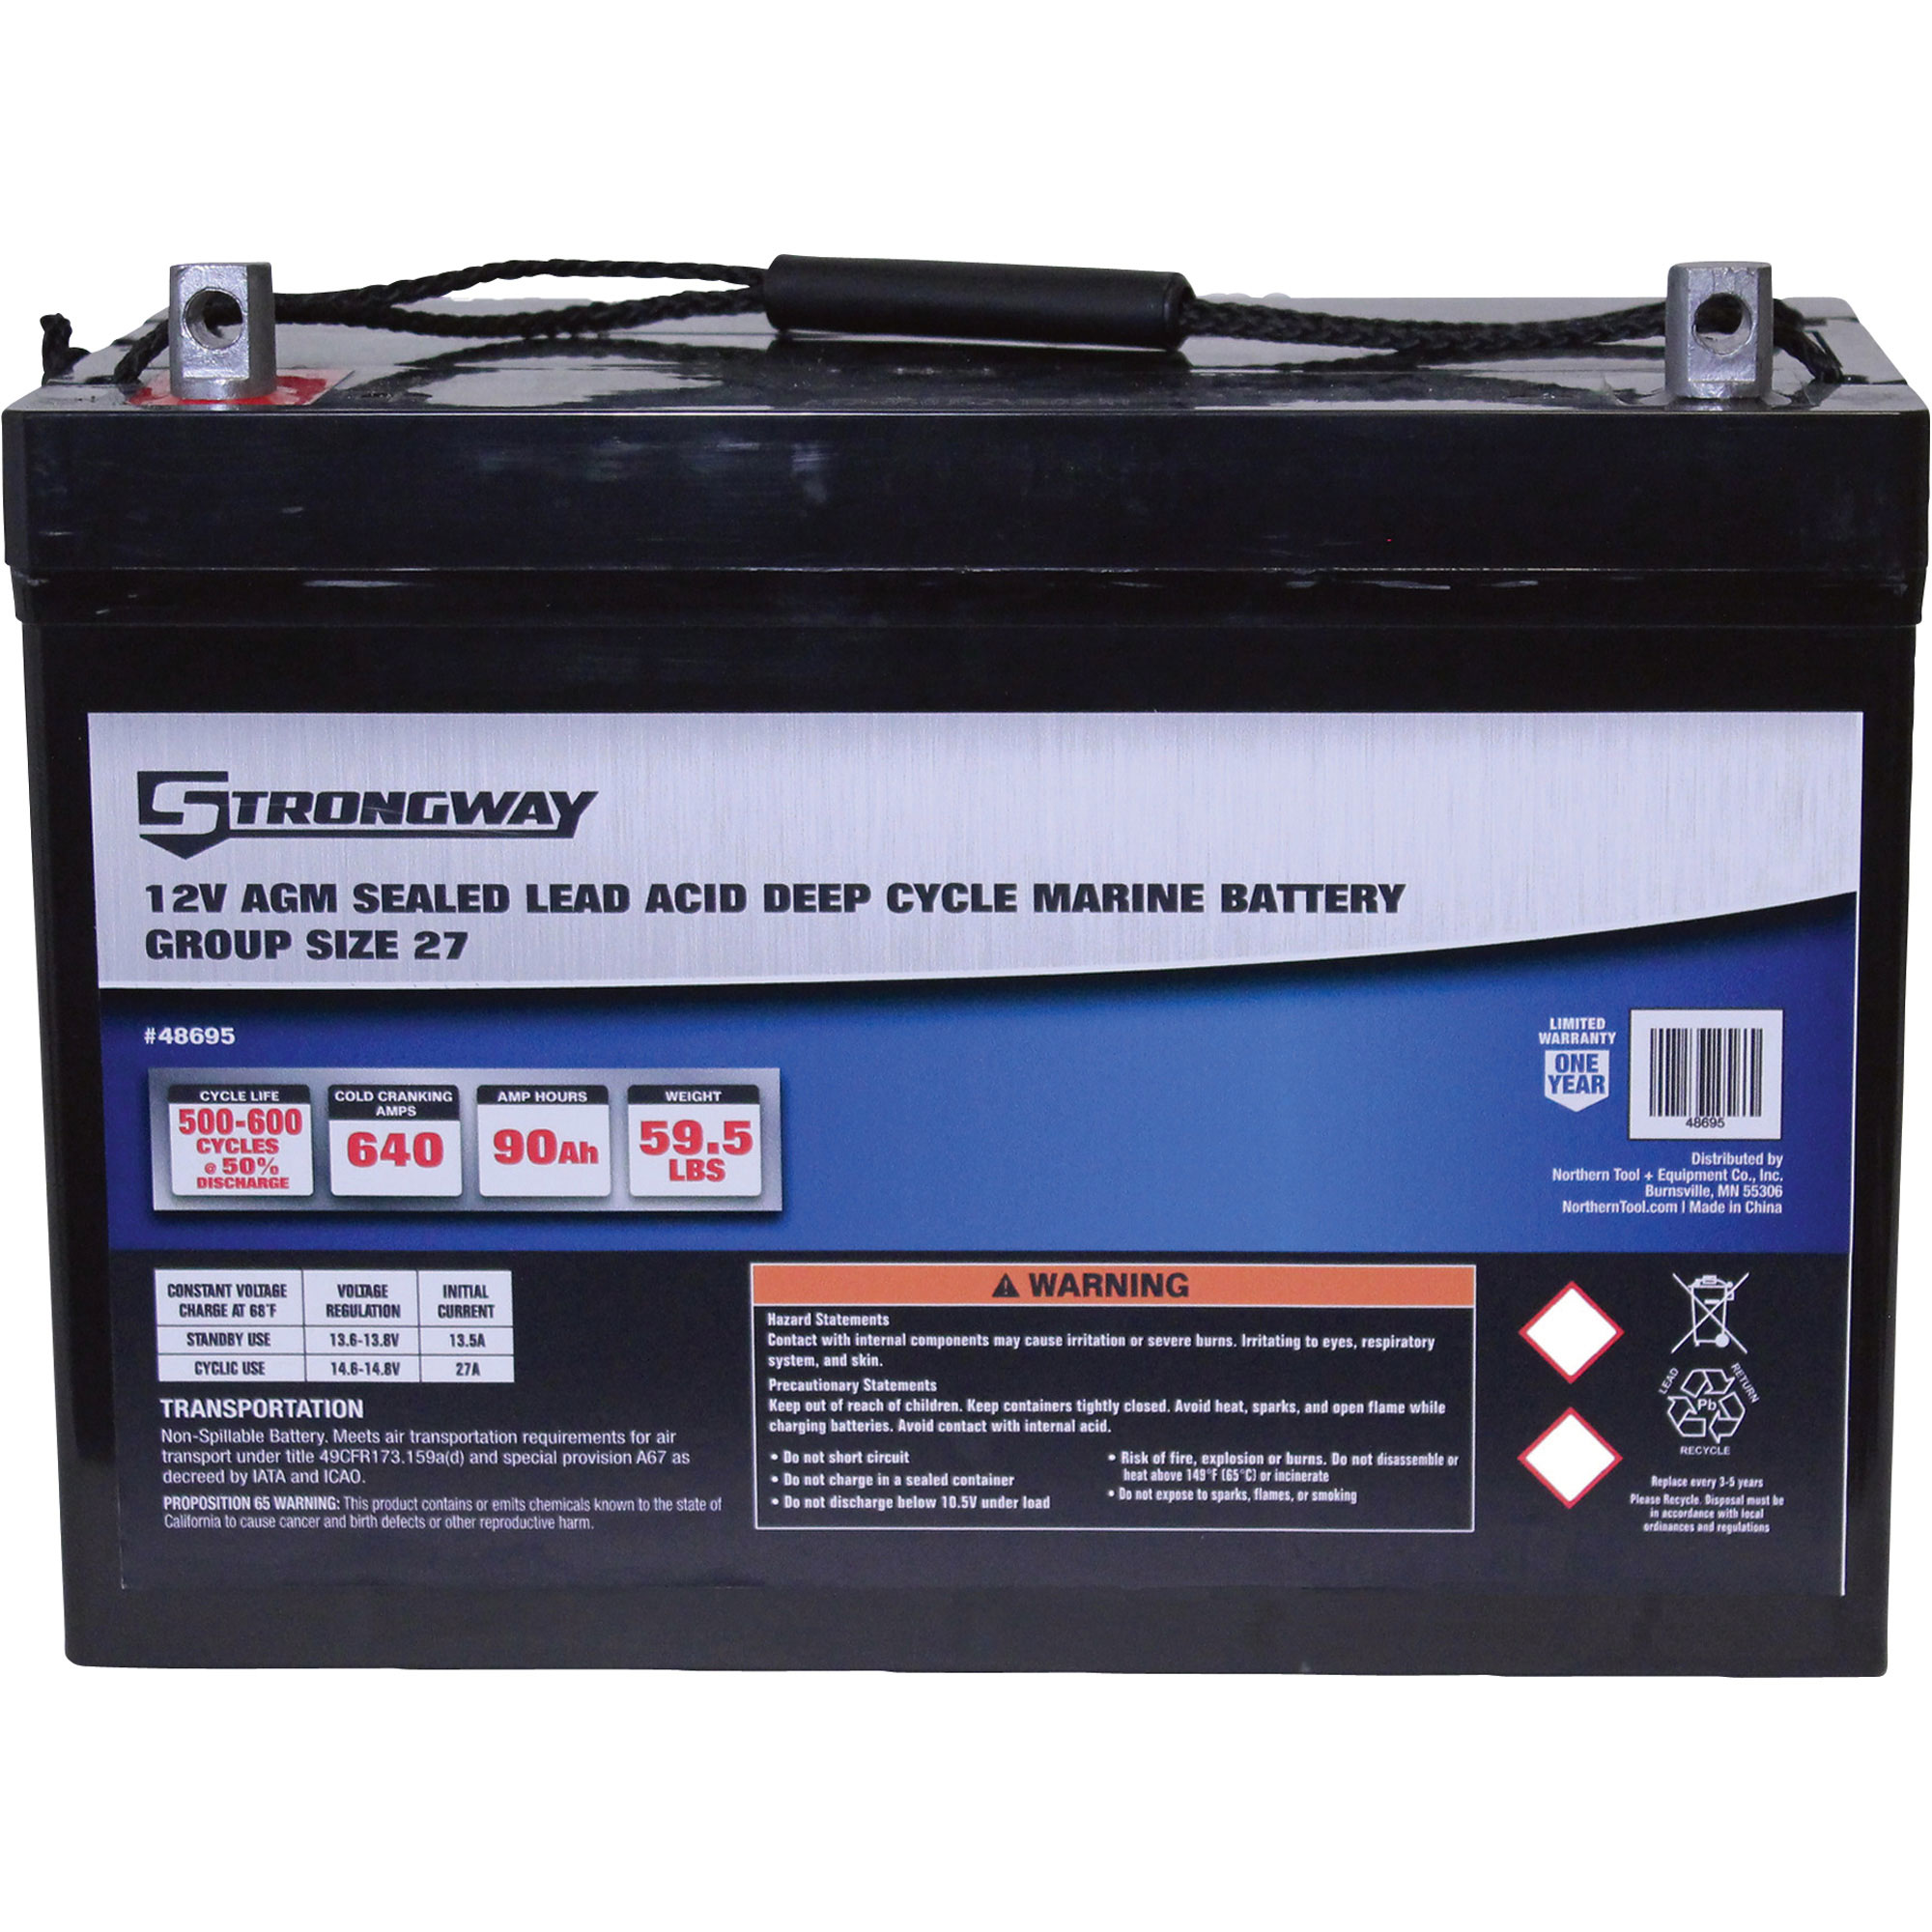 Strongway Deep Cycle Marine Battery — Group Size 27 12 Volt 90 Ah Sealed Lead Acid 48695